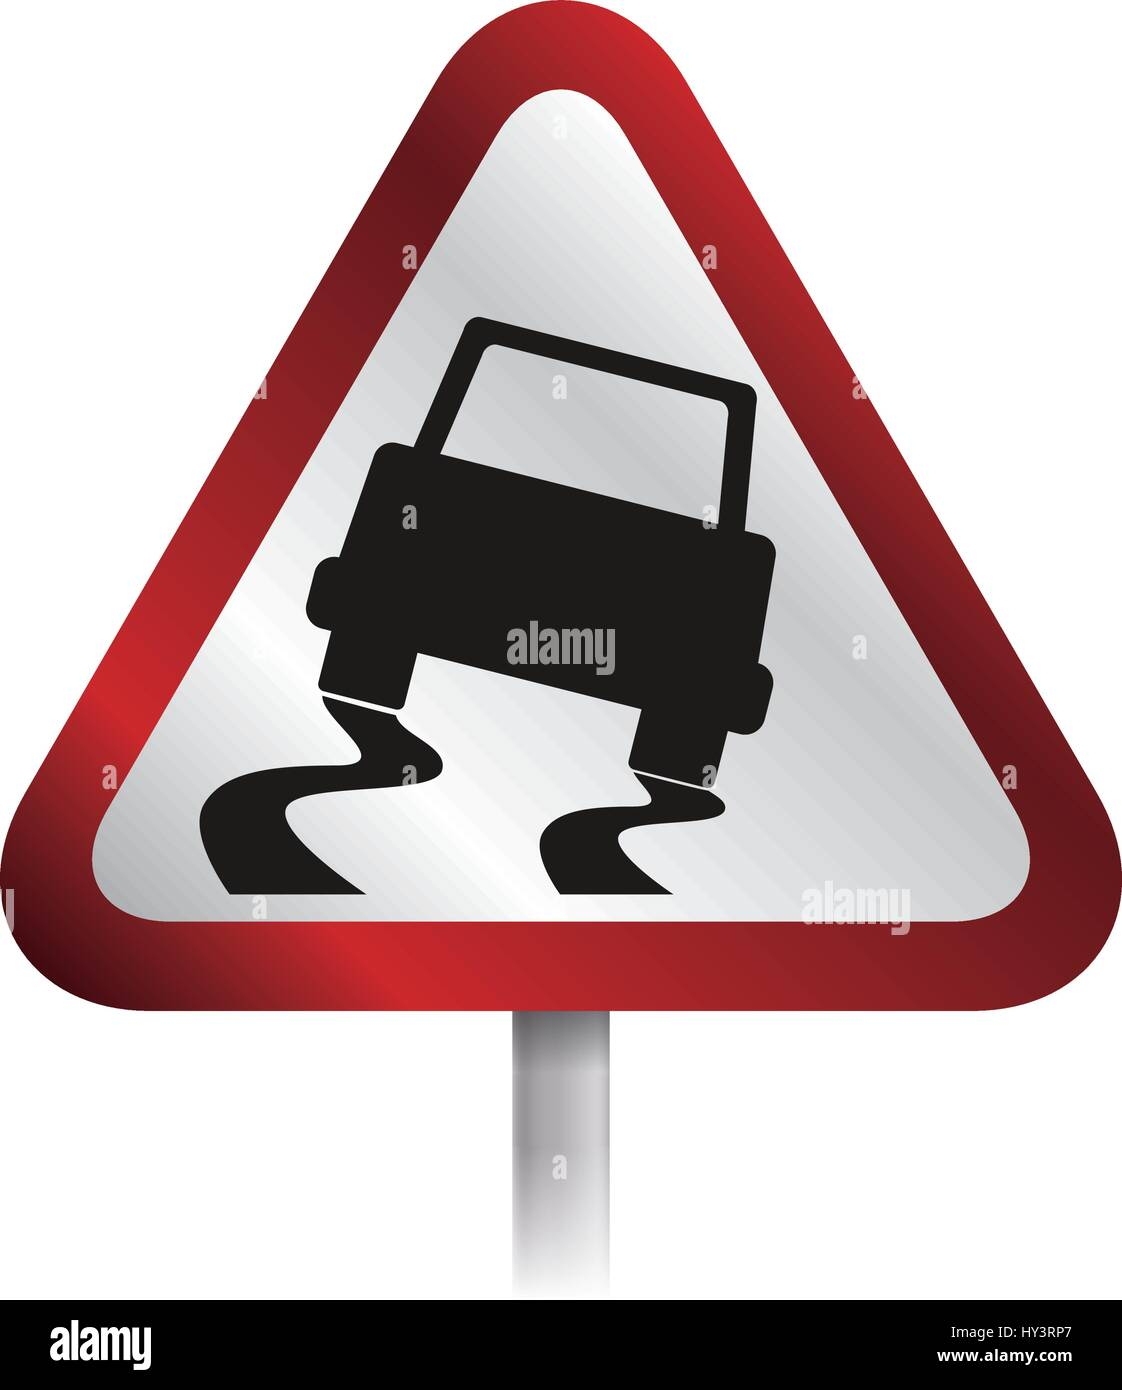 caution sign slippery ground vector icon illustration - Stock Image